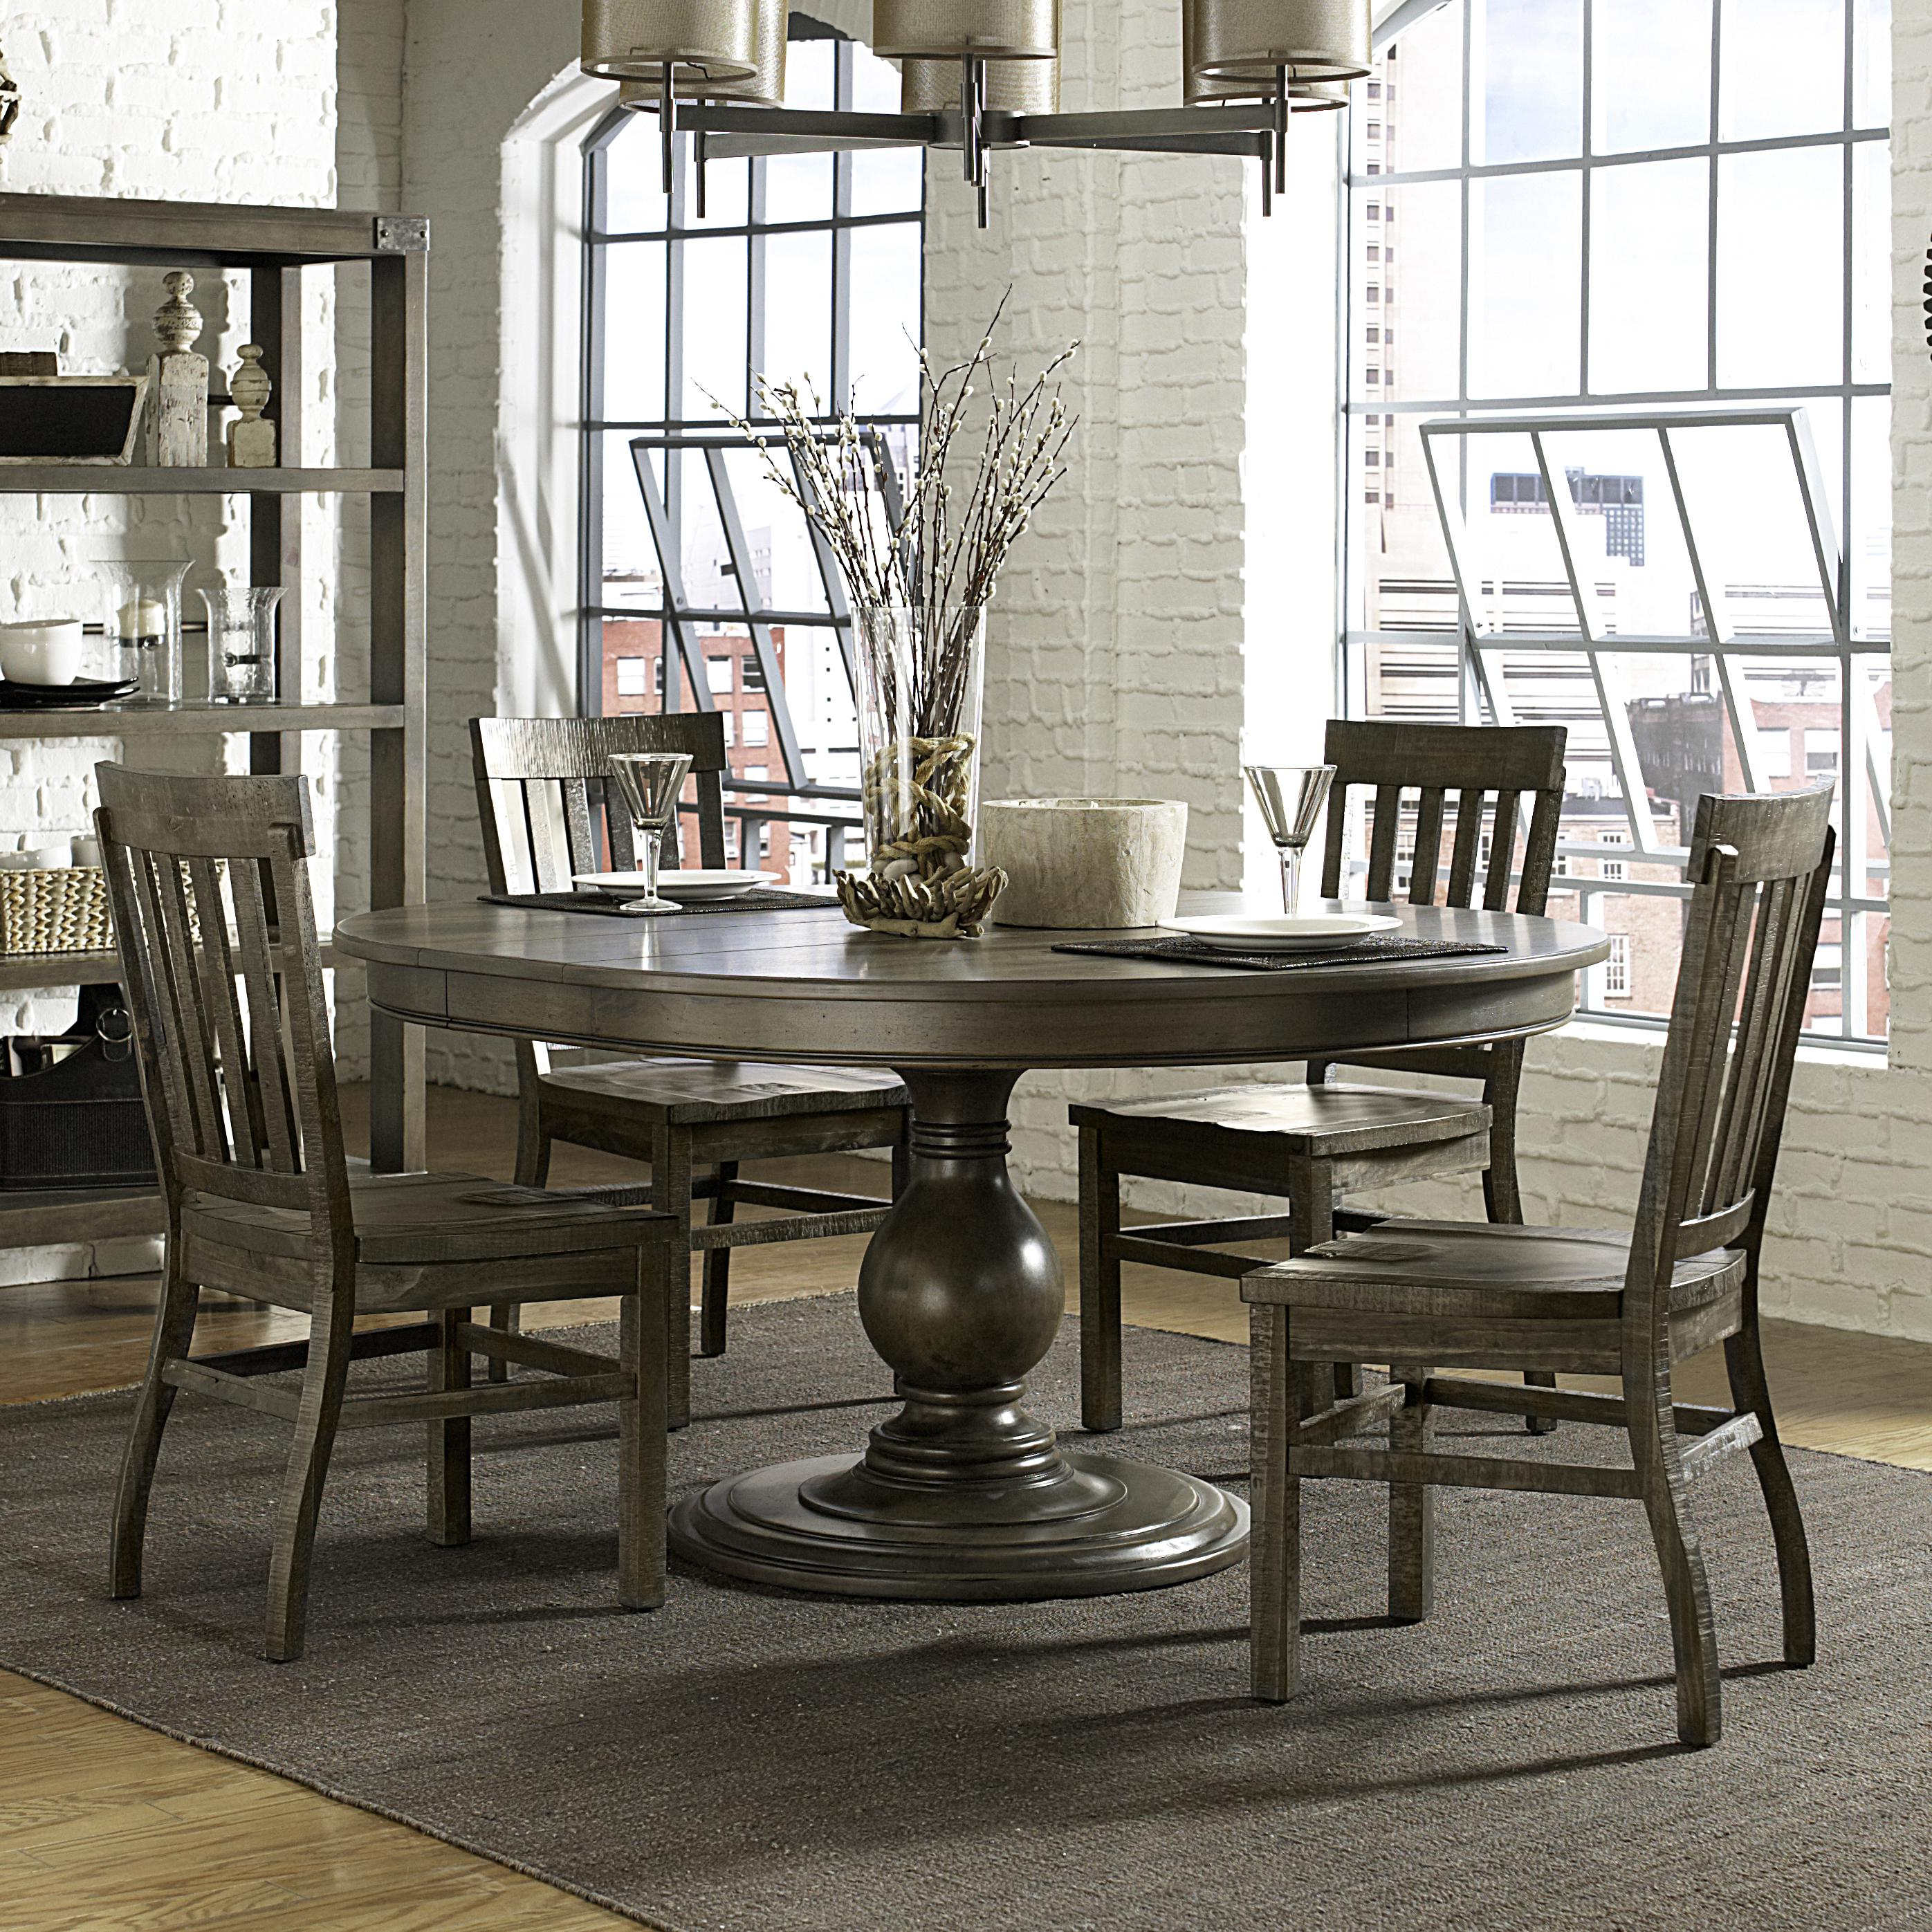 Belfort Select Karlin 5 Piece Table and Chair Set - Item Number: D2471-22+4x60